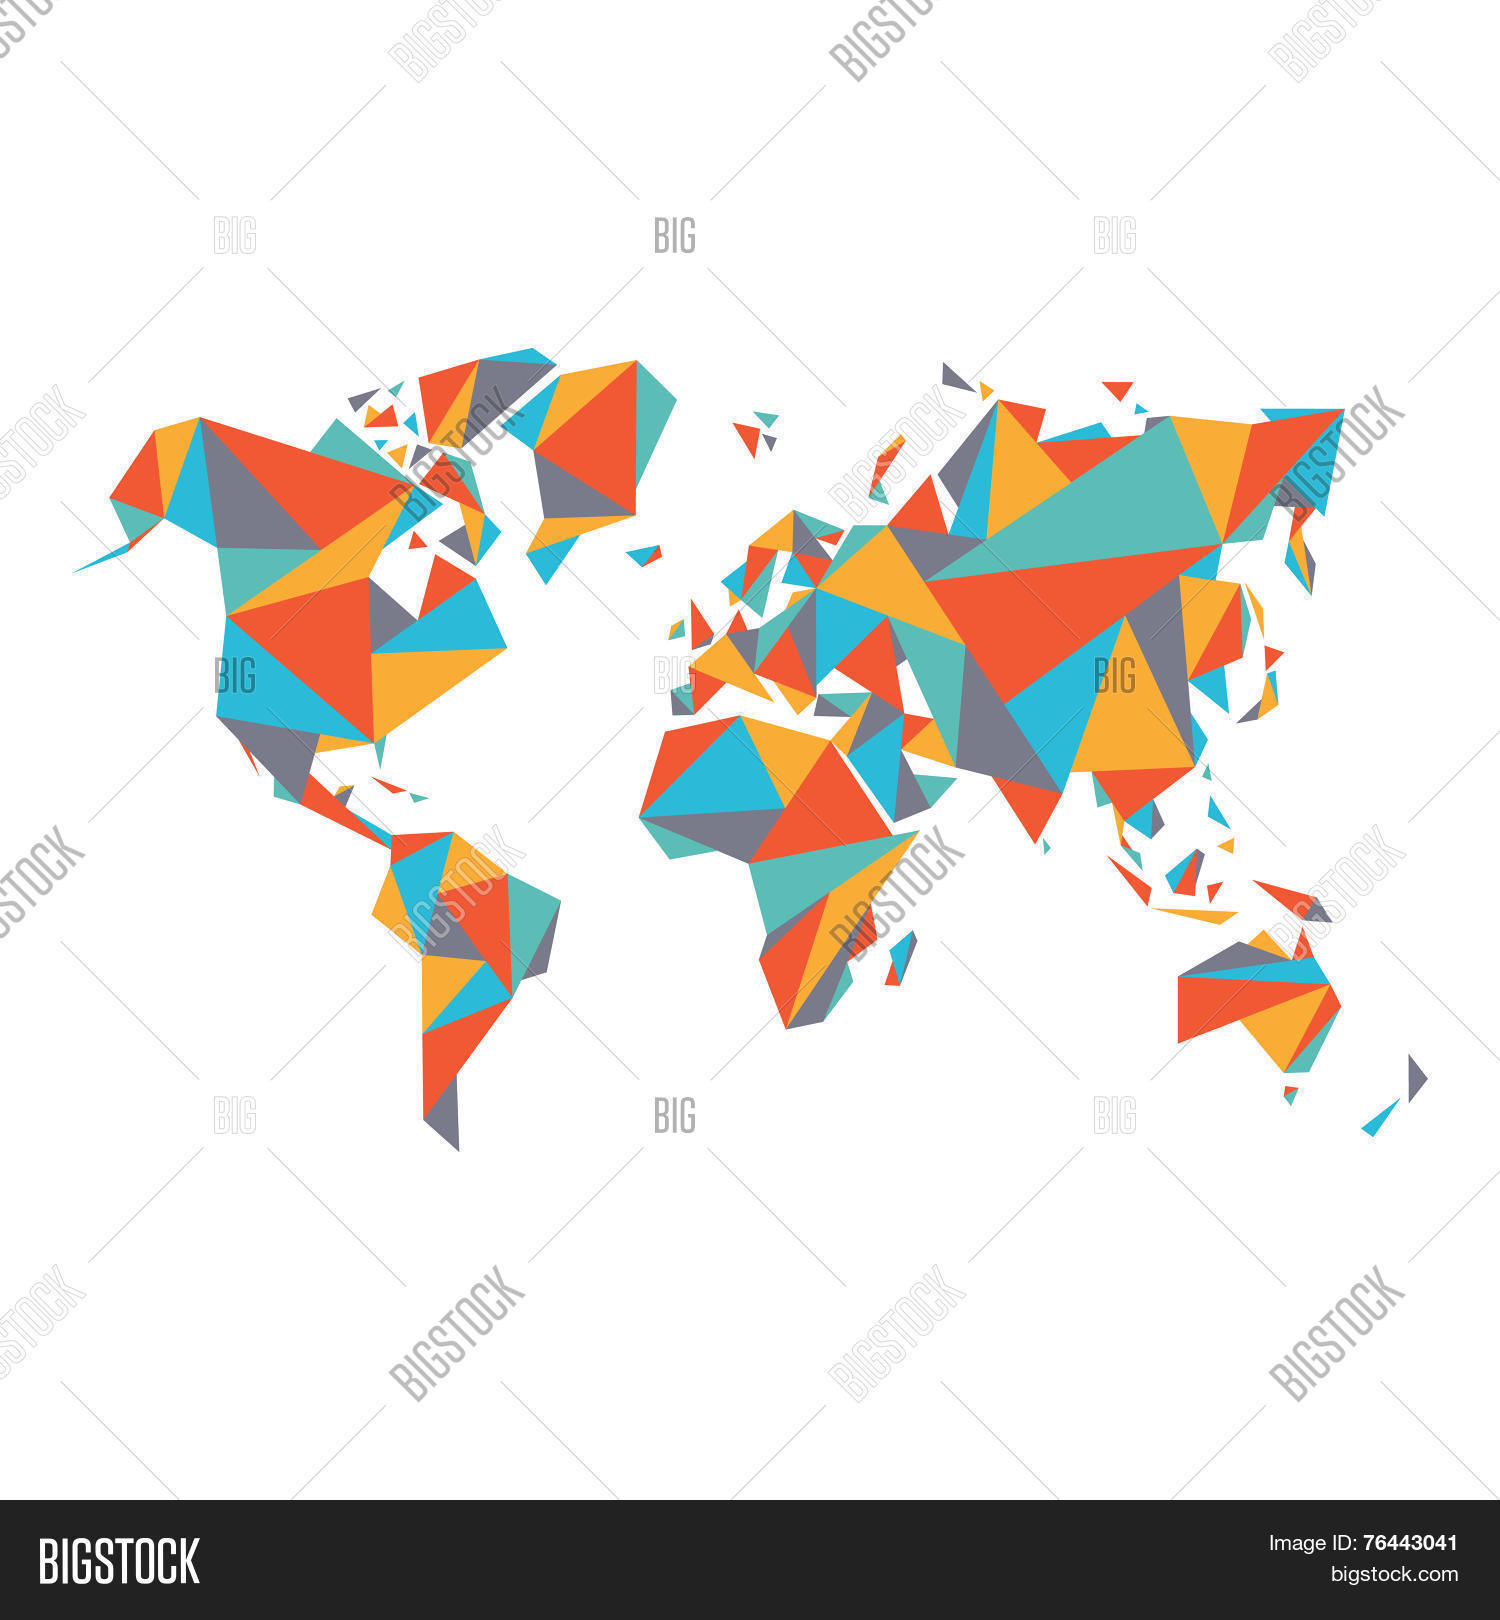 Abstract world map vector photo free trial bigstock abstract world map vector illustration geometric structure in flat color for presentation bookl gumiabroncs Image collections